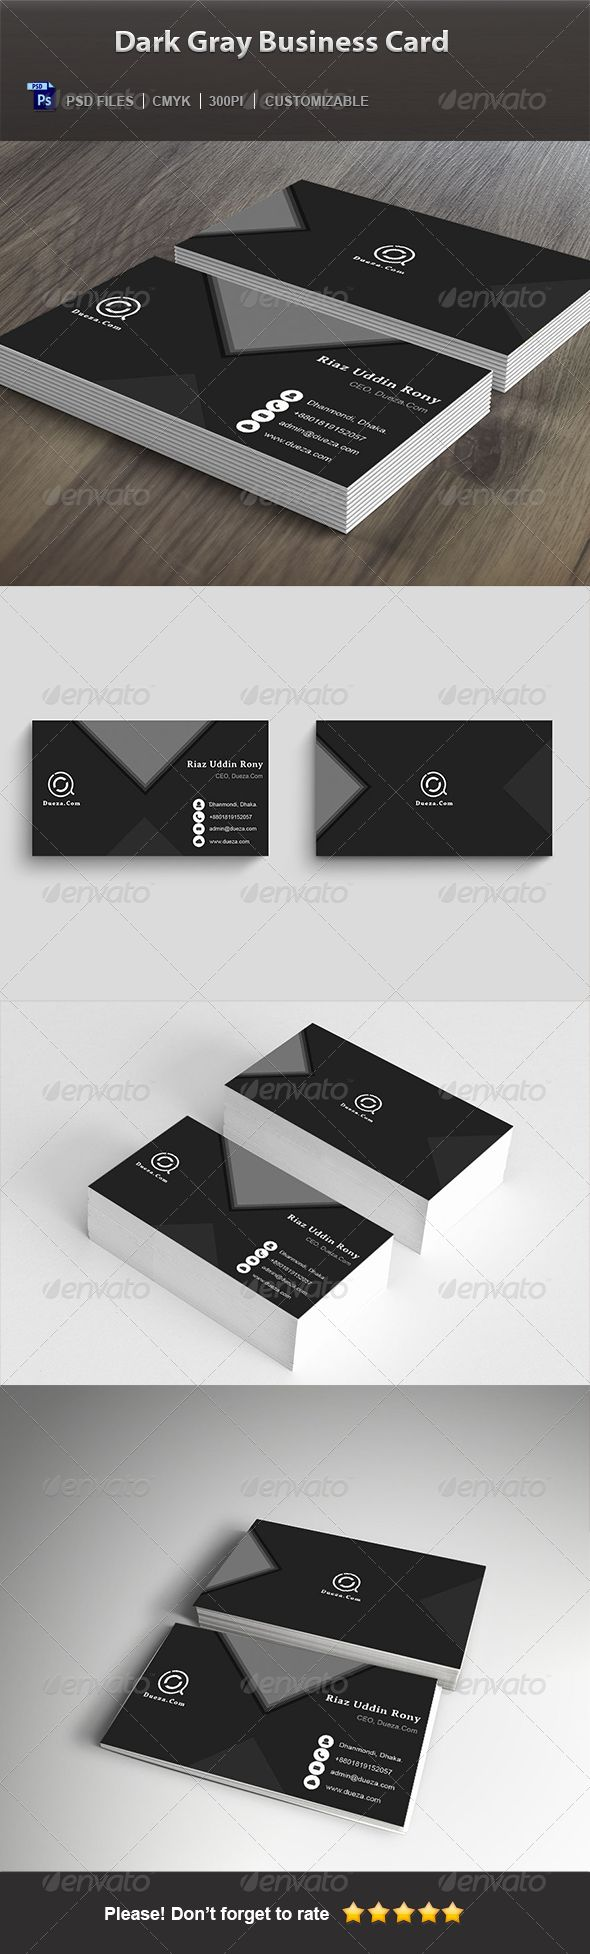 51 best blog for modern creative business card design images on creative business cards dark gray business card magicingreecefo Choice Image